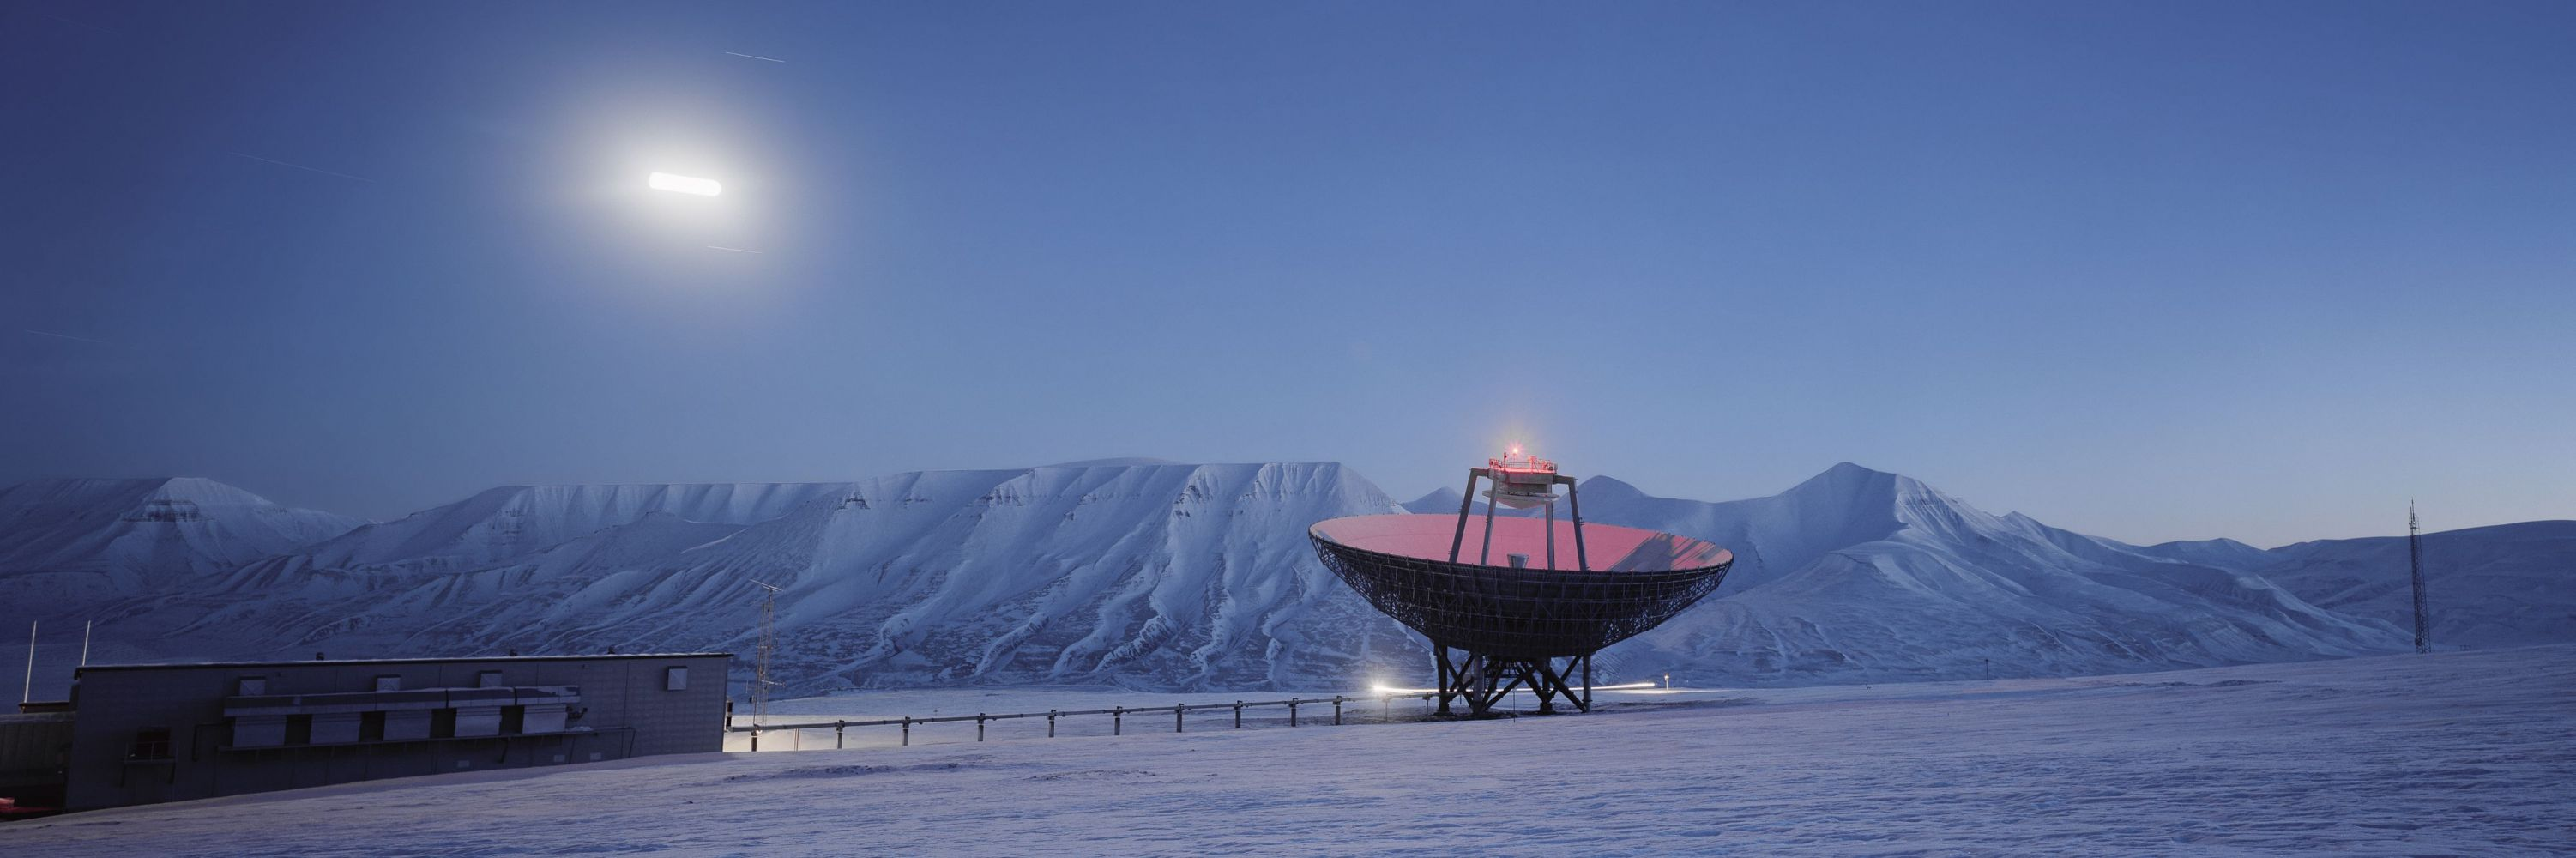 Photographie contemporaine - Christian Houge - Dish in moonlight, Arctic Technology, Spitsbergen